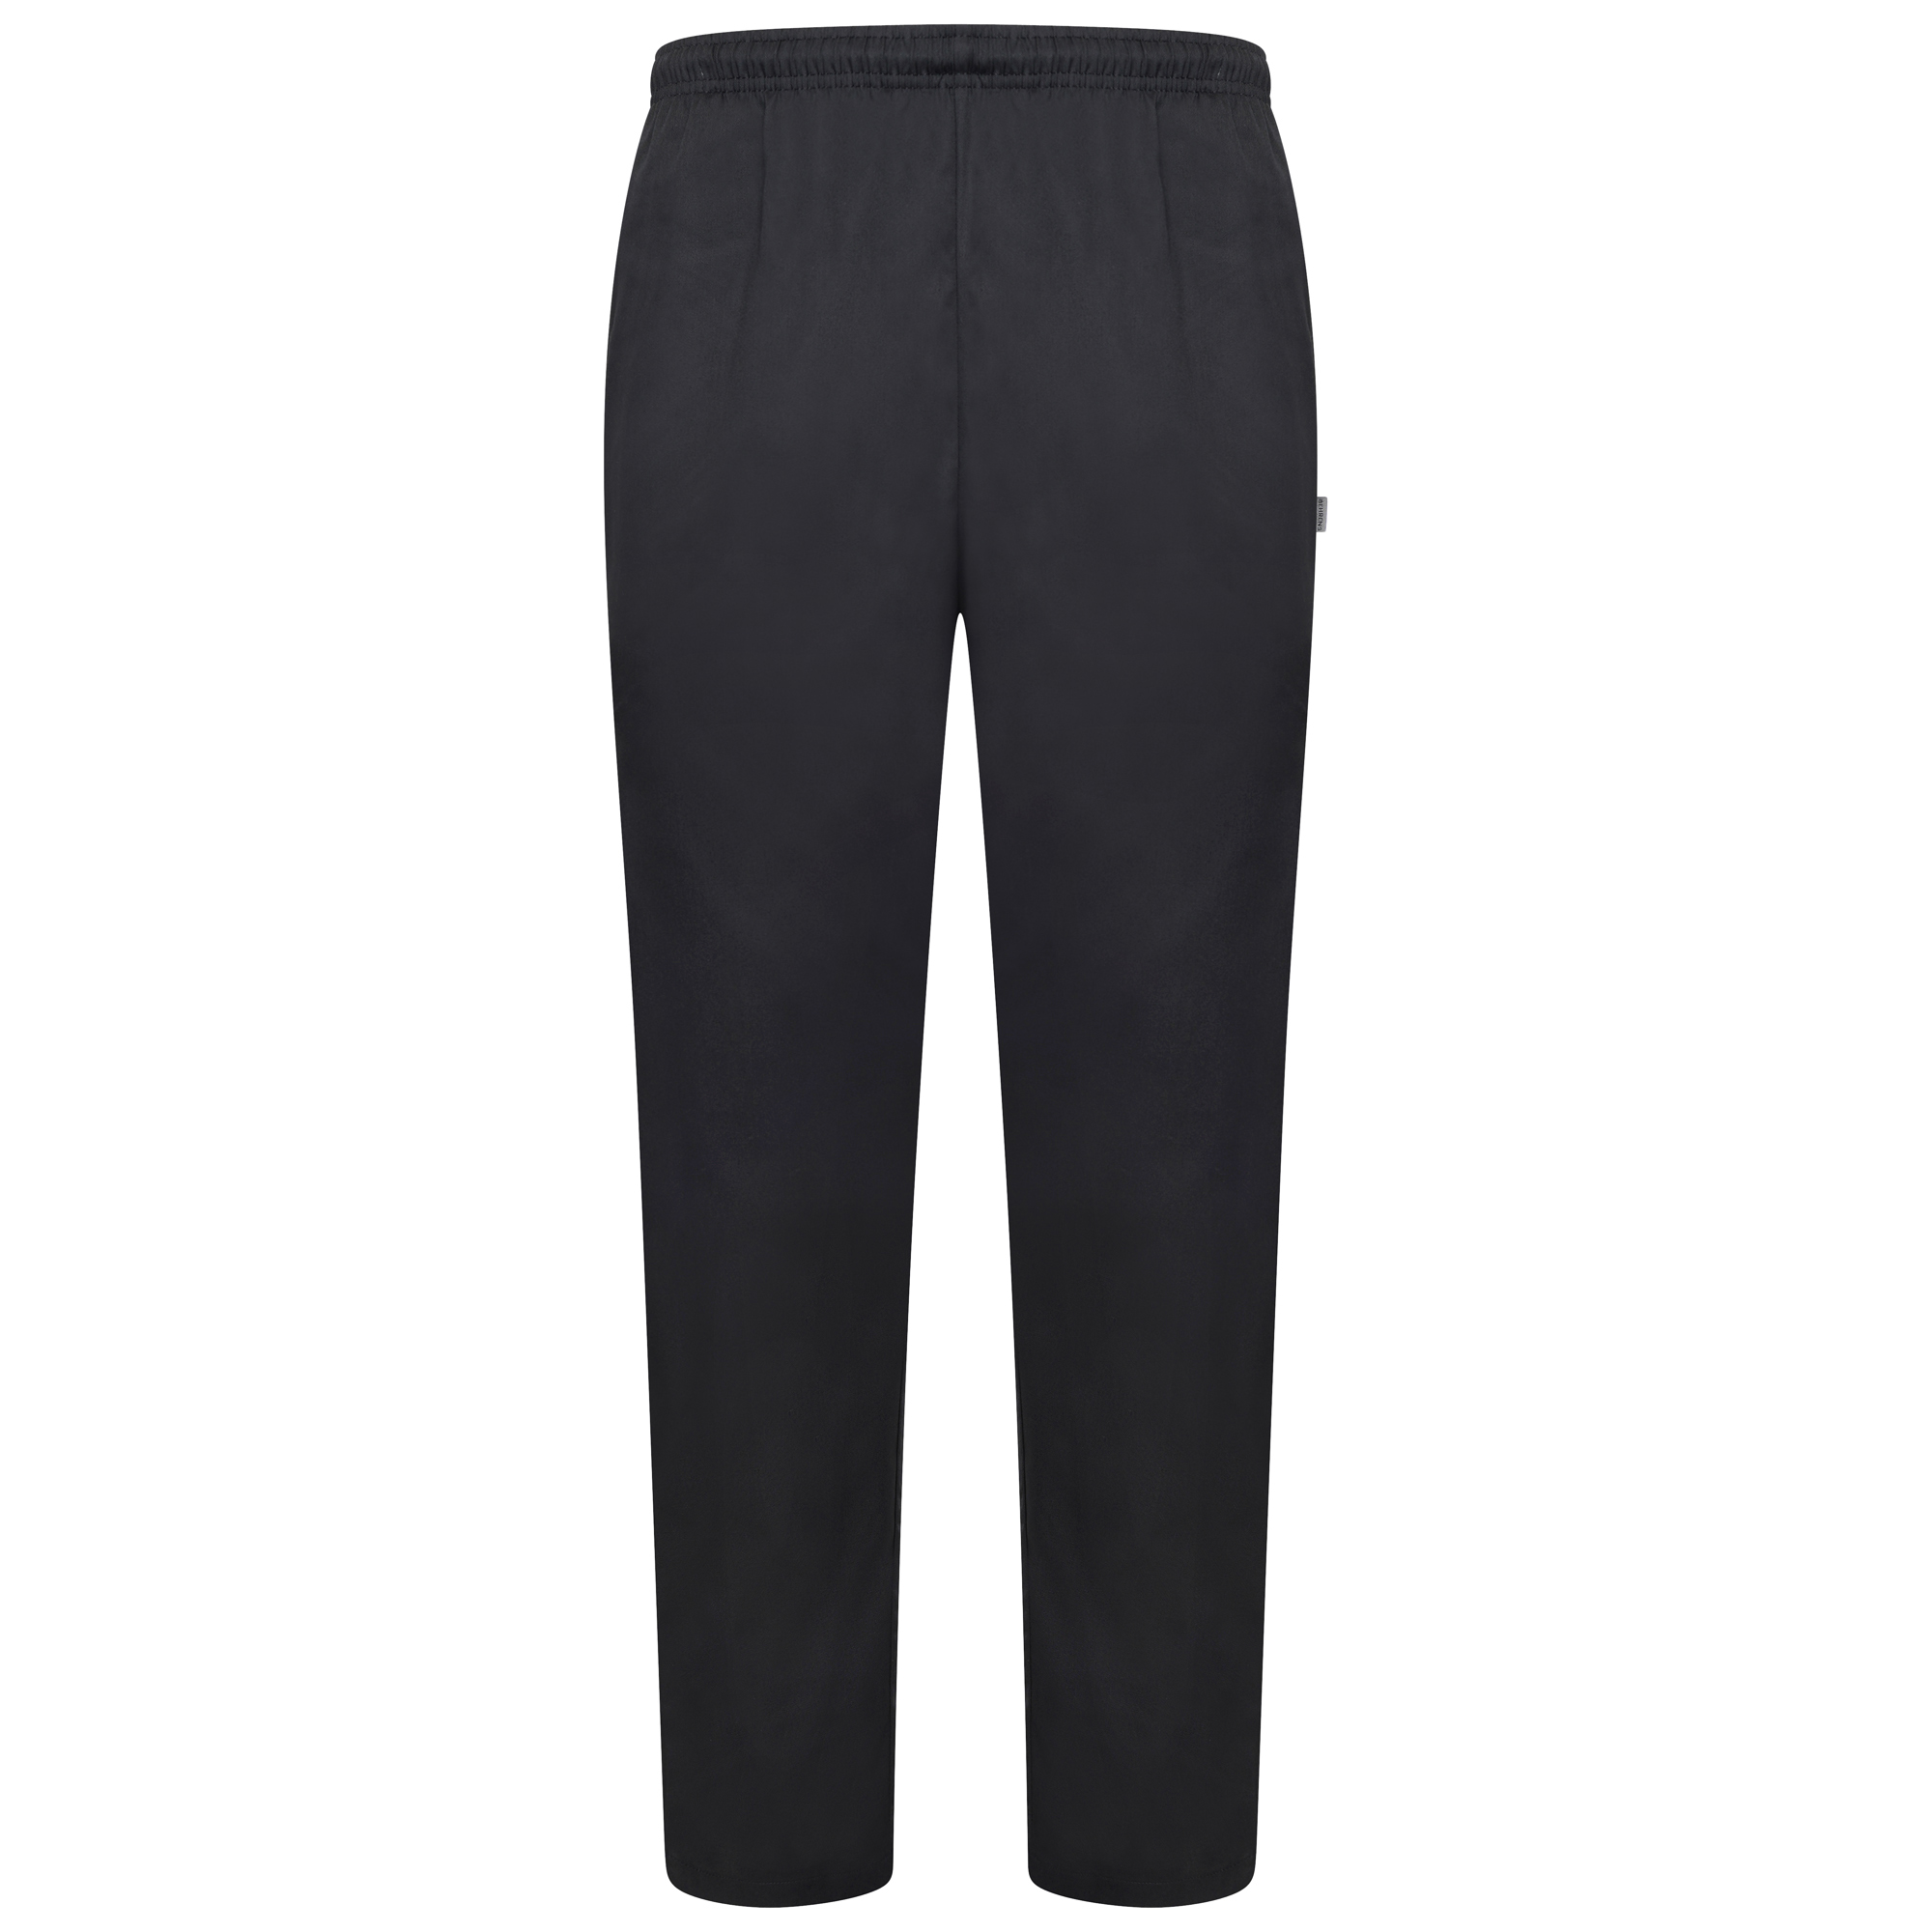 Chefs Trousers